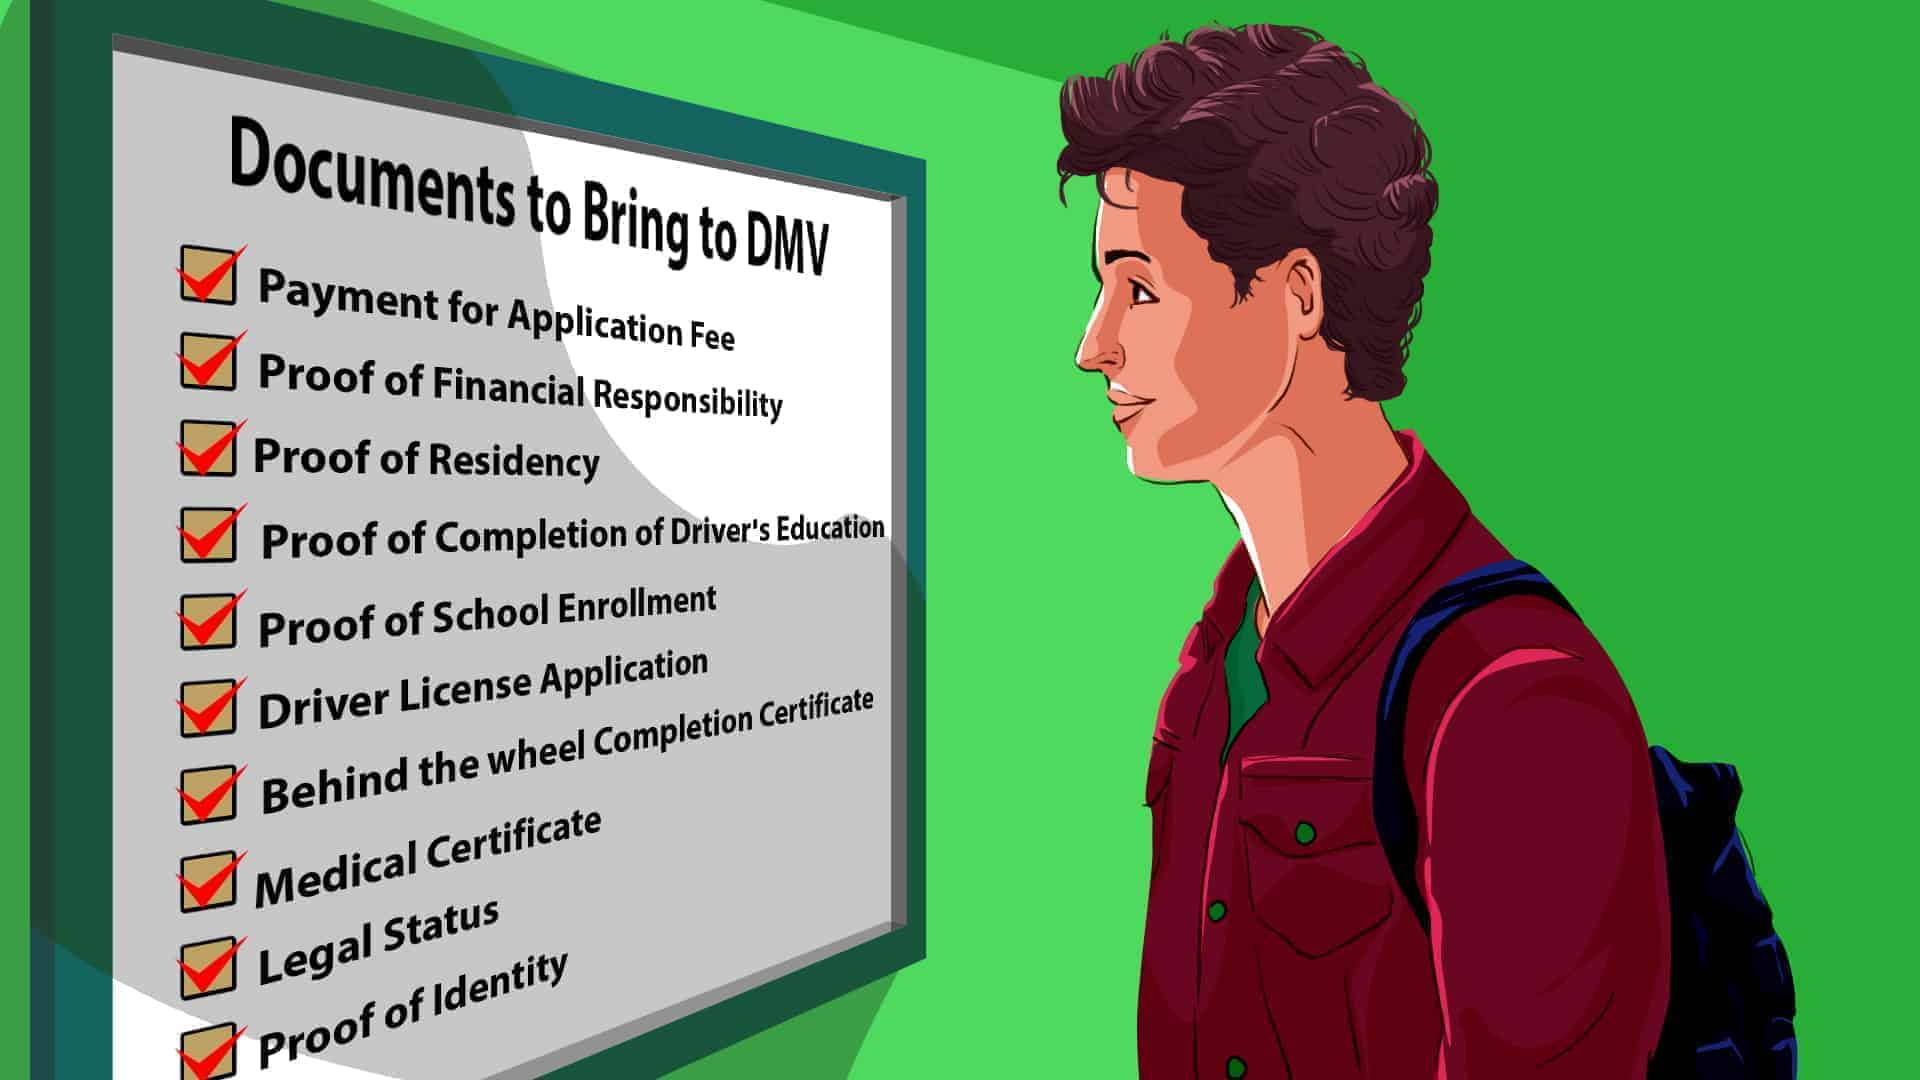 What documents to bring to DMV